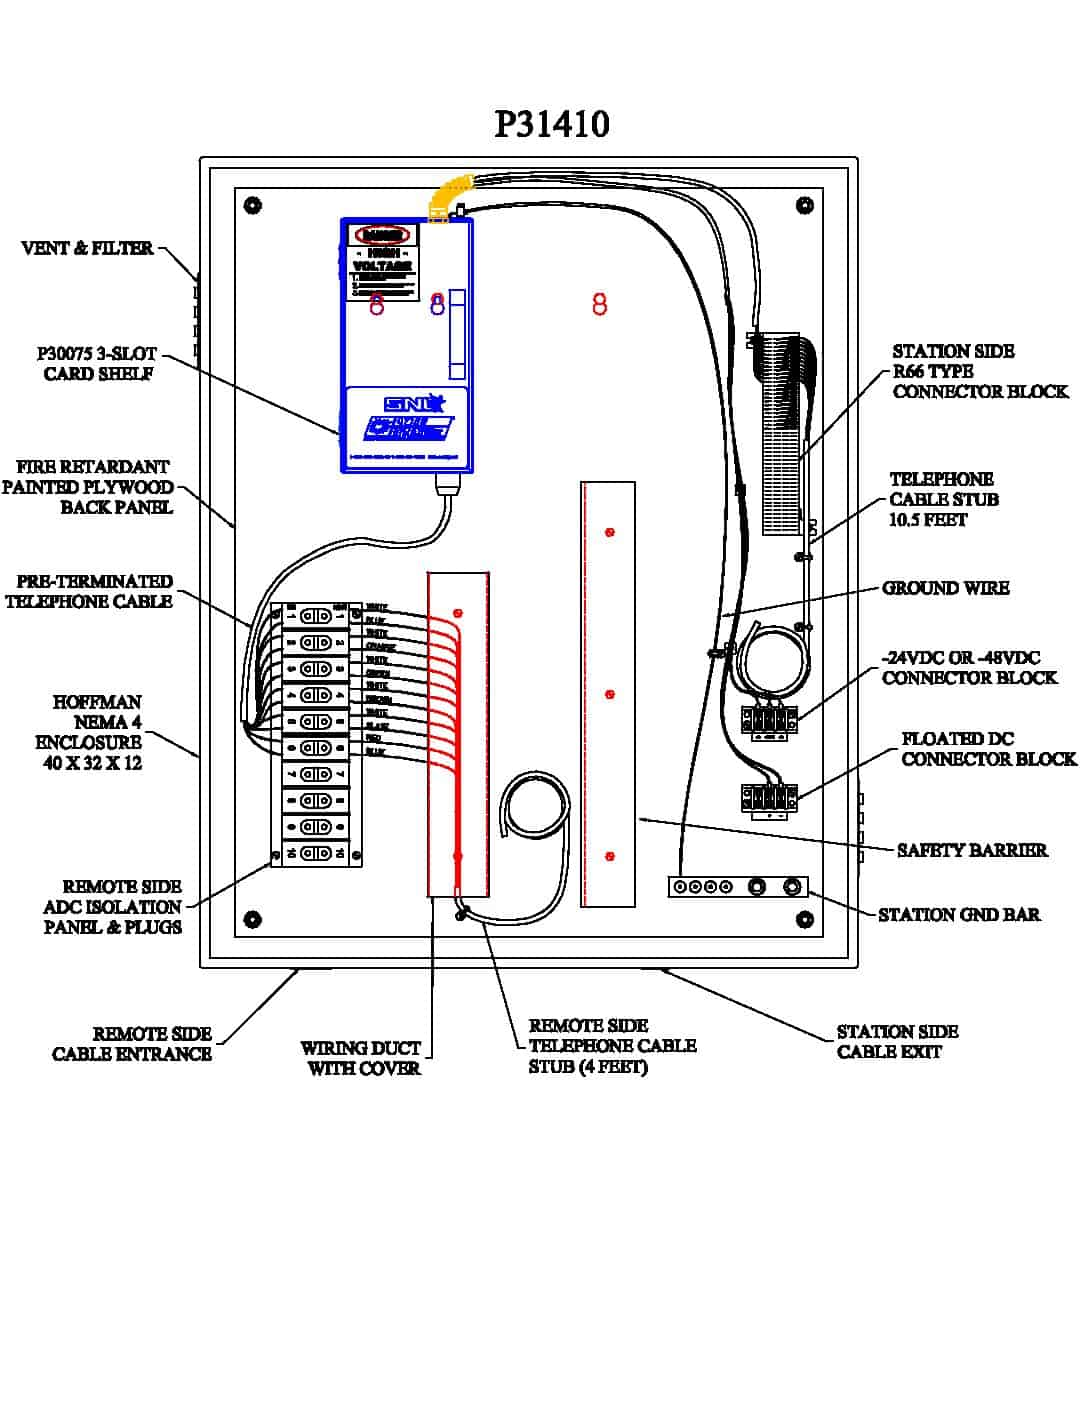 P31410 Turnkey Protection Packages – 3 slot PDF thumbnail